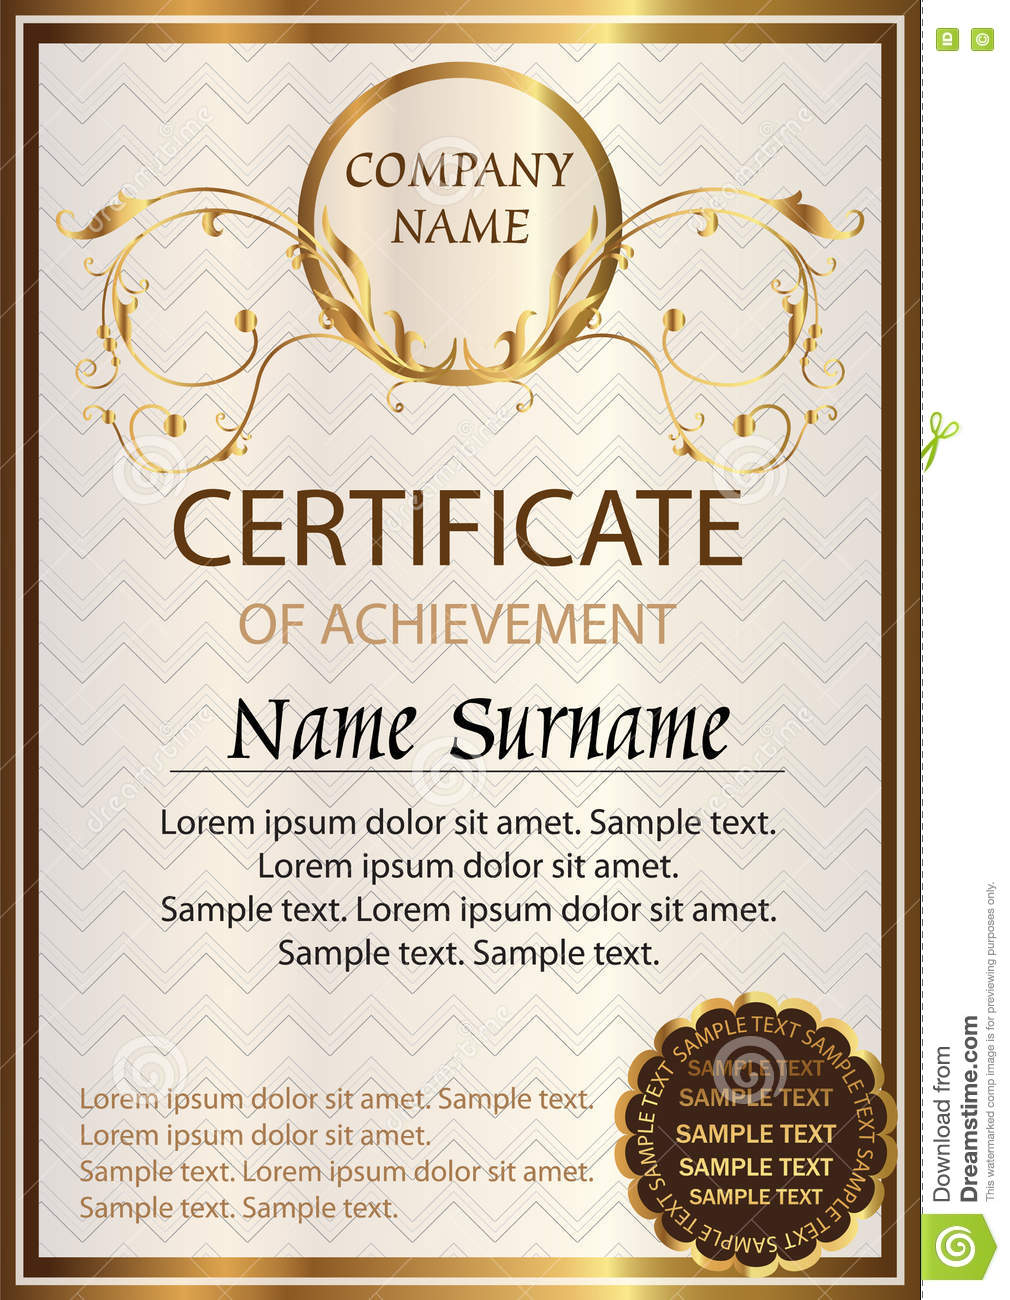 certificate or diploma template award winner stock vector image  certificate or diploma template award winner